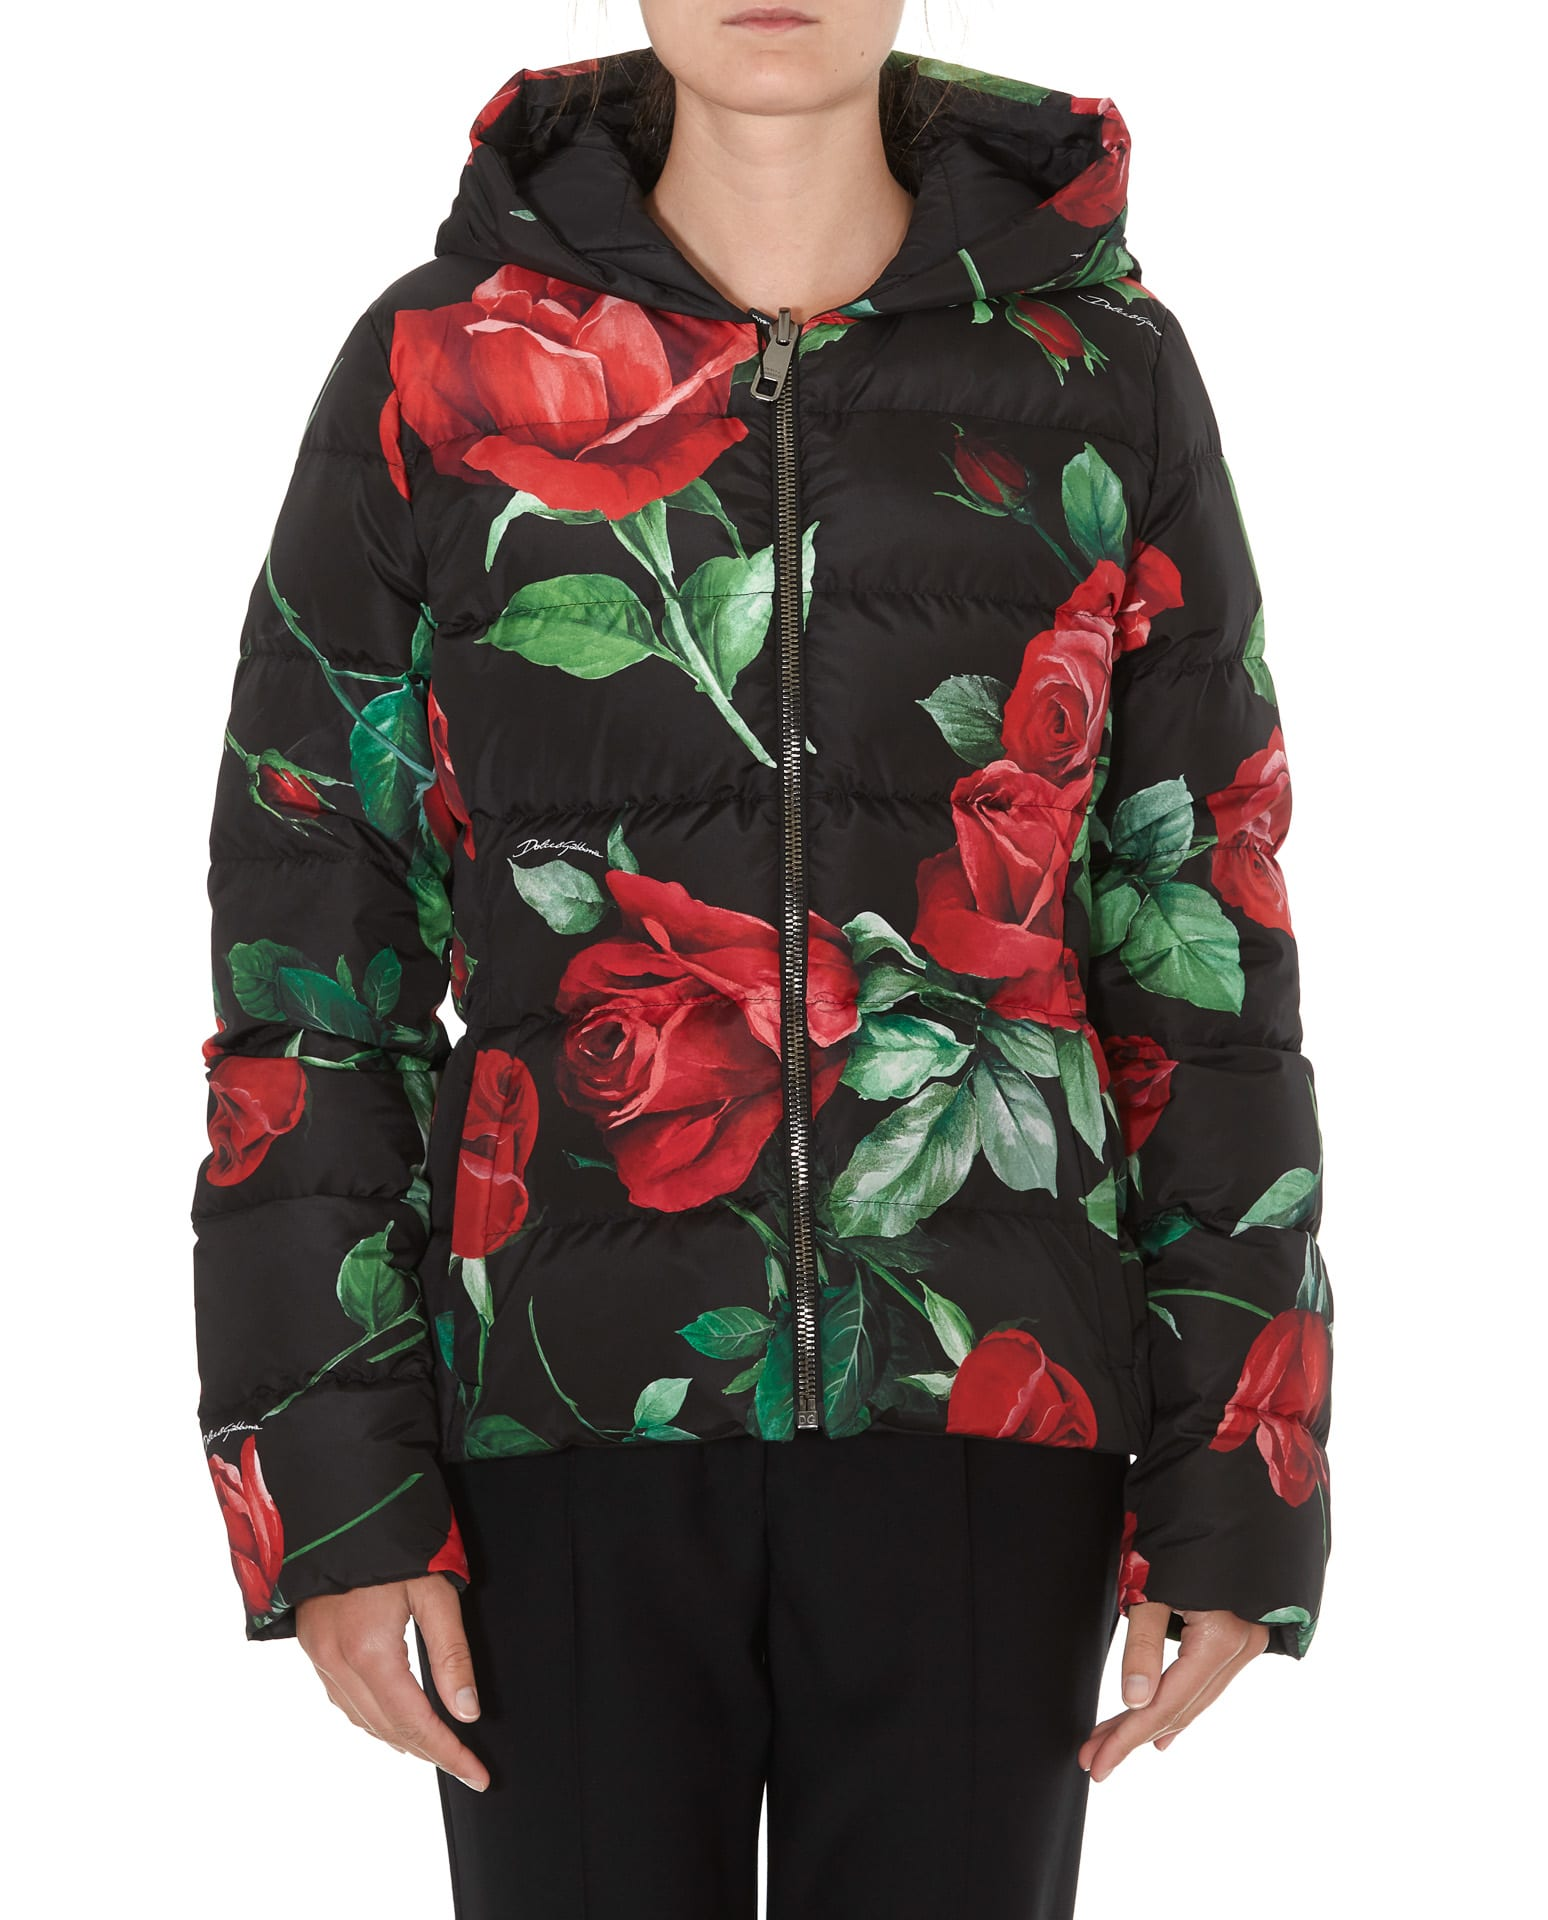 Dolce & Gabbana Roses Print Oversize Down Jacket